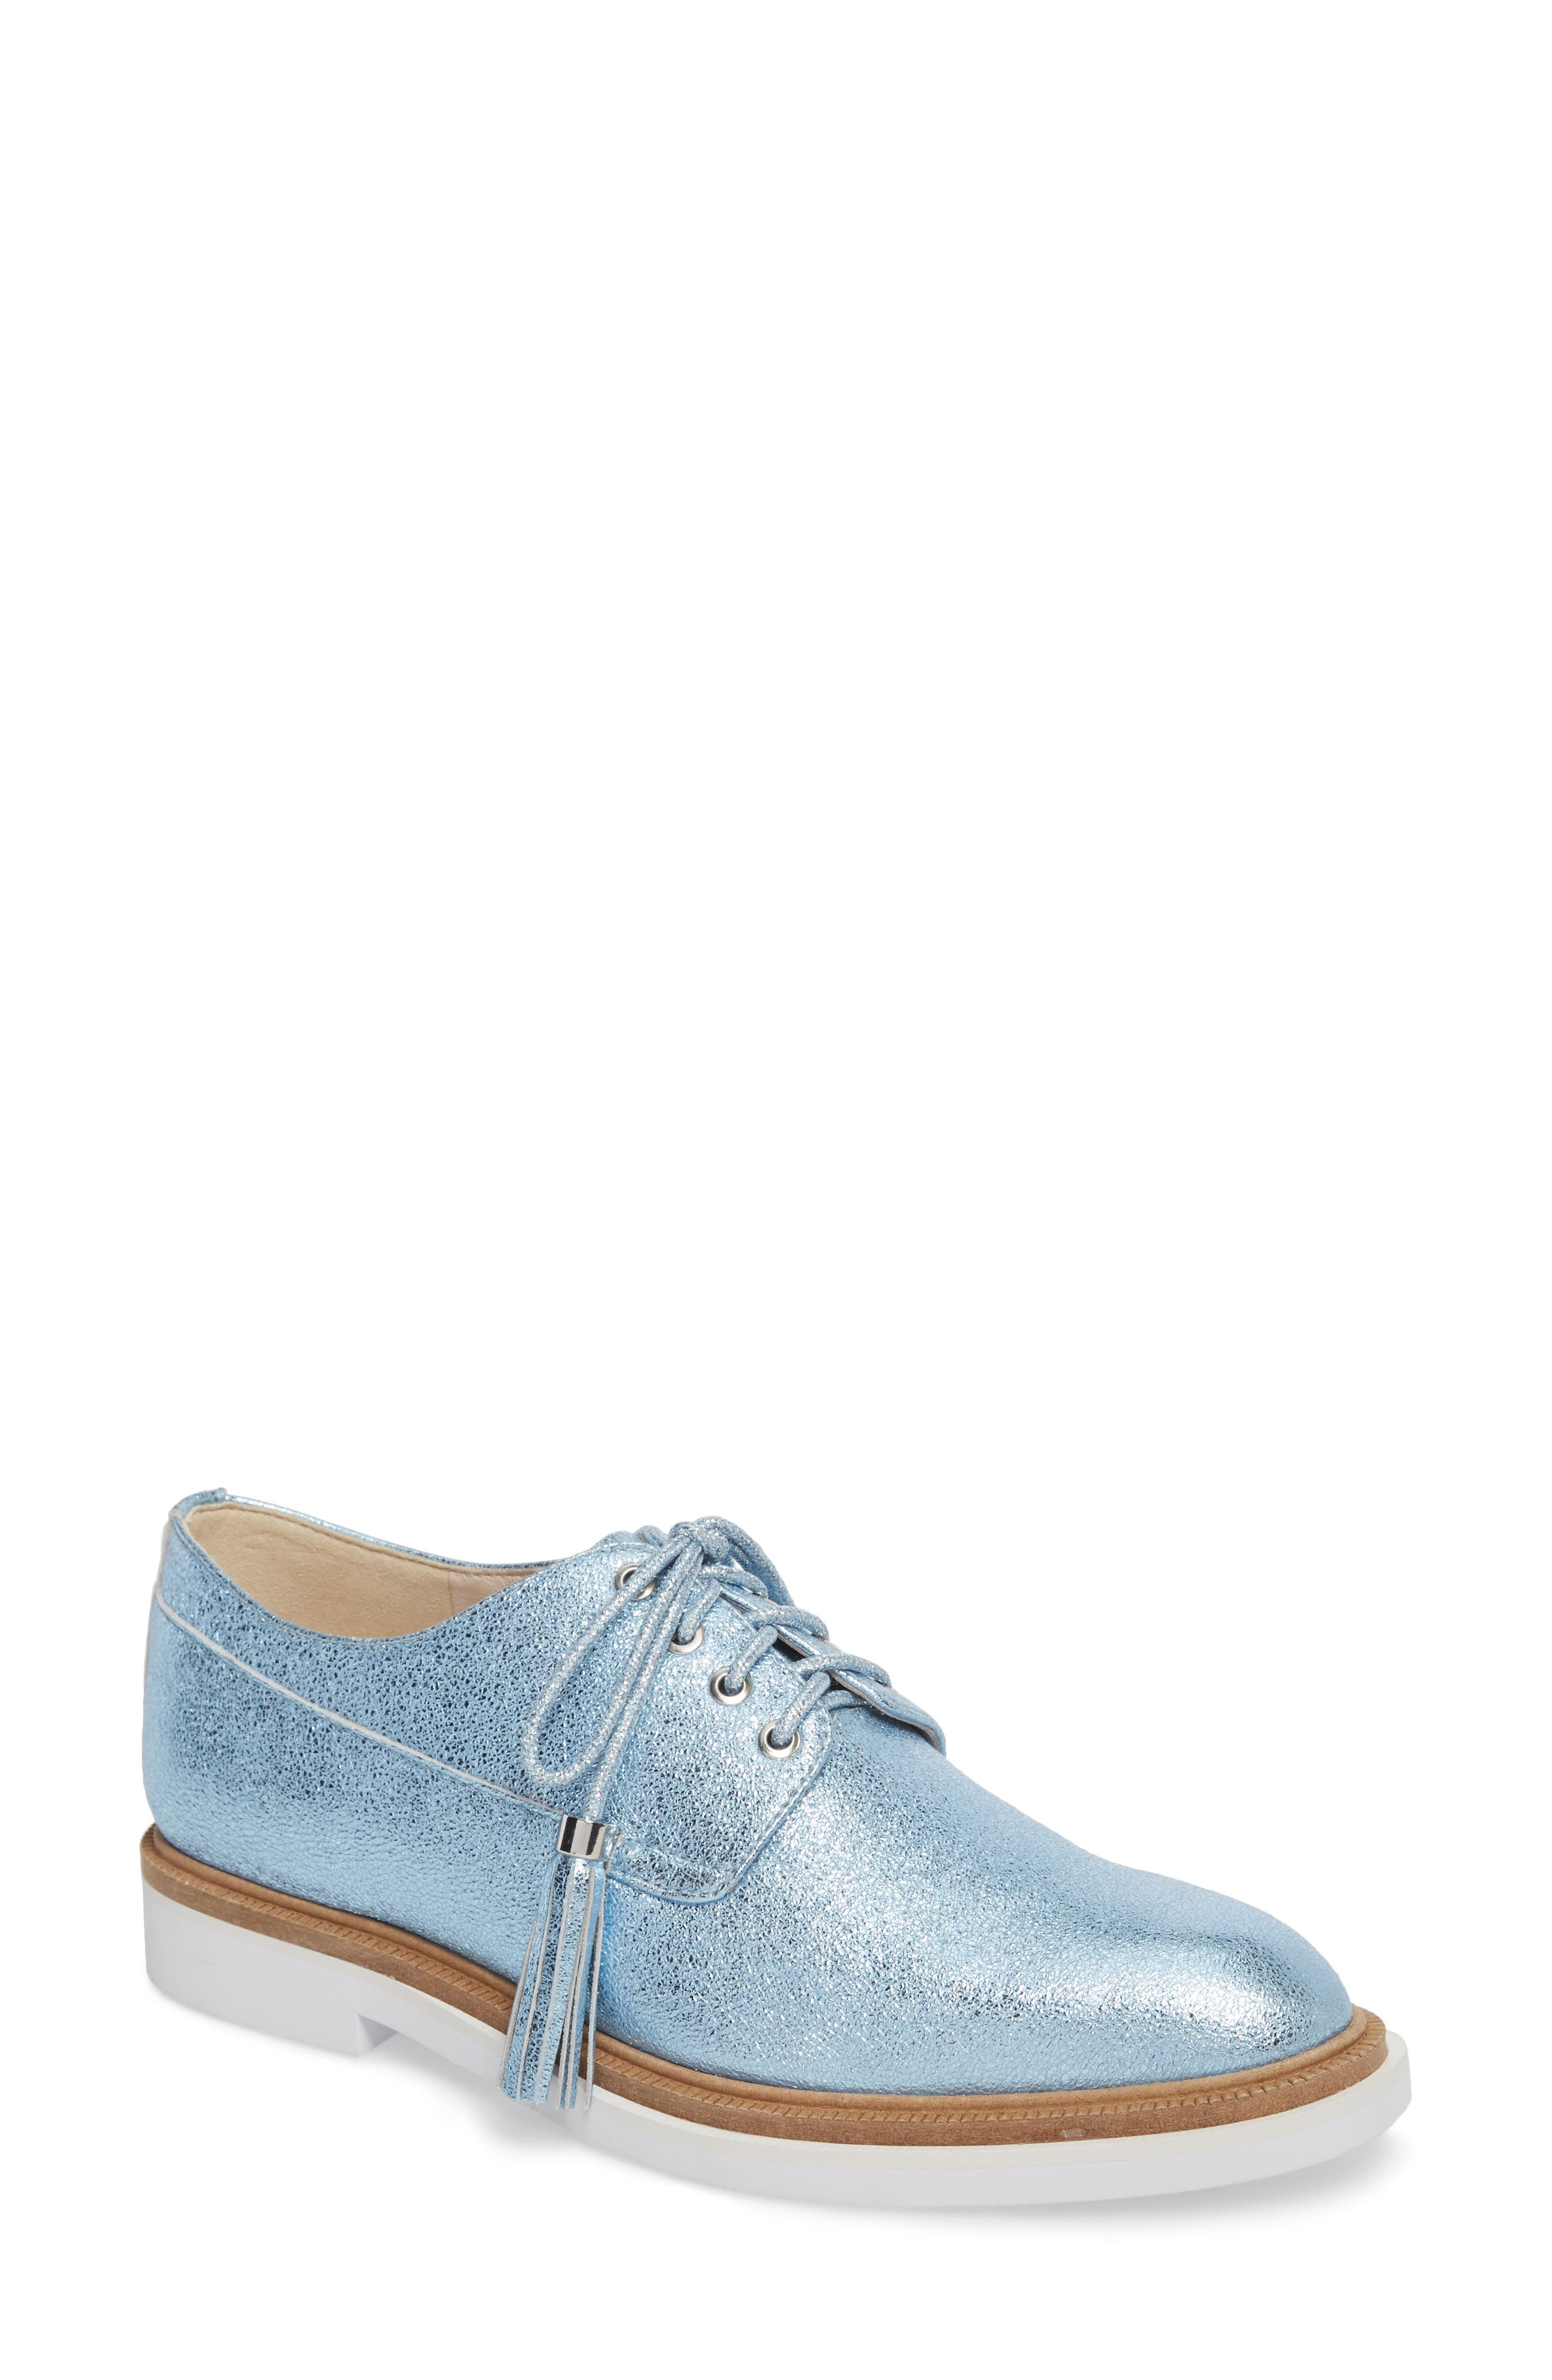 Annie Oxford,                         Main,                         color, Blue Metallic Leather